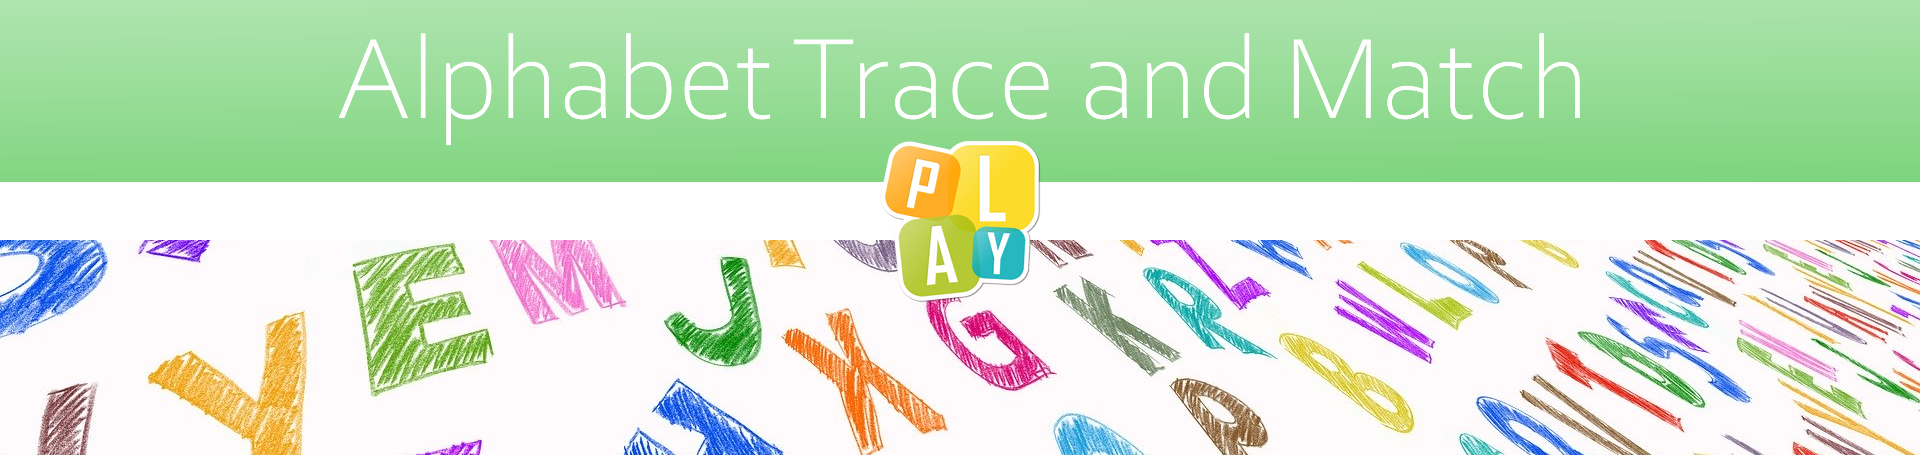 Alphabet Trace and Match